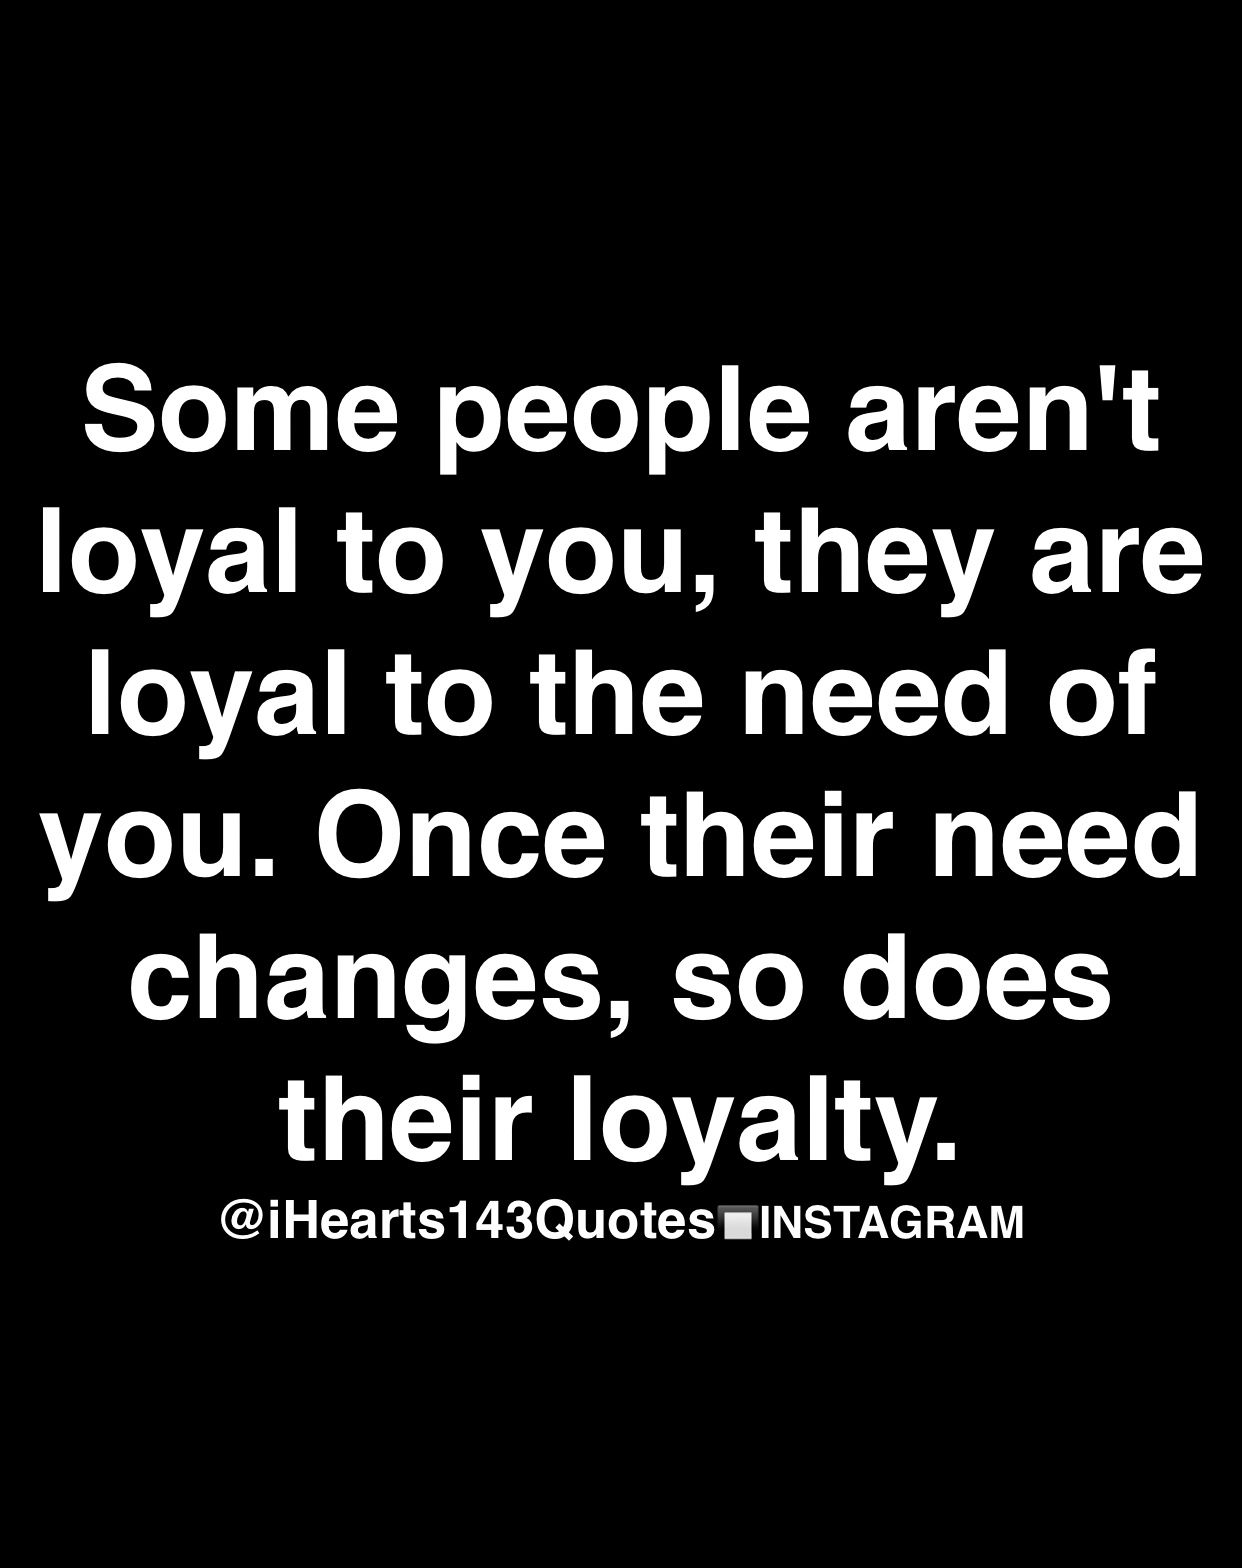 1000 Motivational And Inspirational Quotes That Will Inspire Success In Your Life Friends Quotes Loyal Quotes Quotes By Emotions